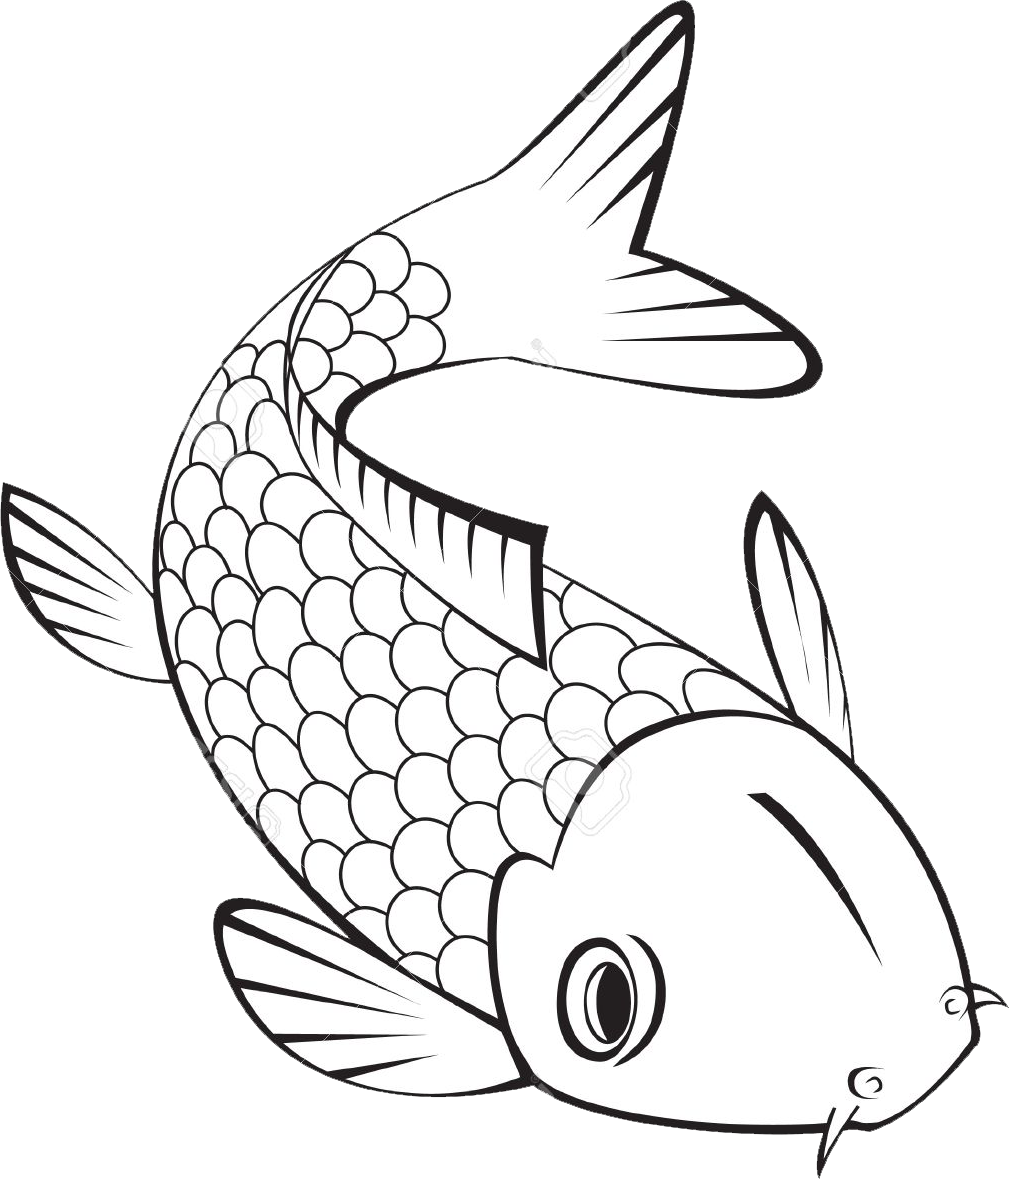 27 Best Photo Of Goldfish Coloring Page Albanysinsanity Com Fish Coloring Page Fish Template Fish Clipart